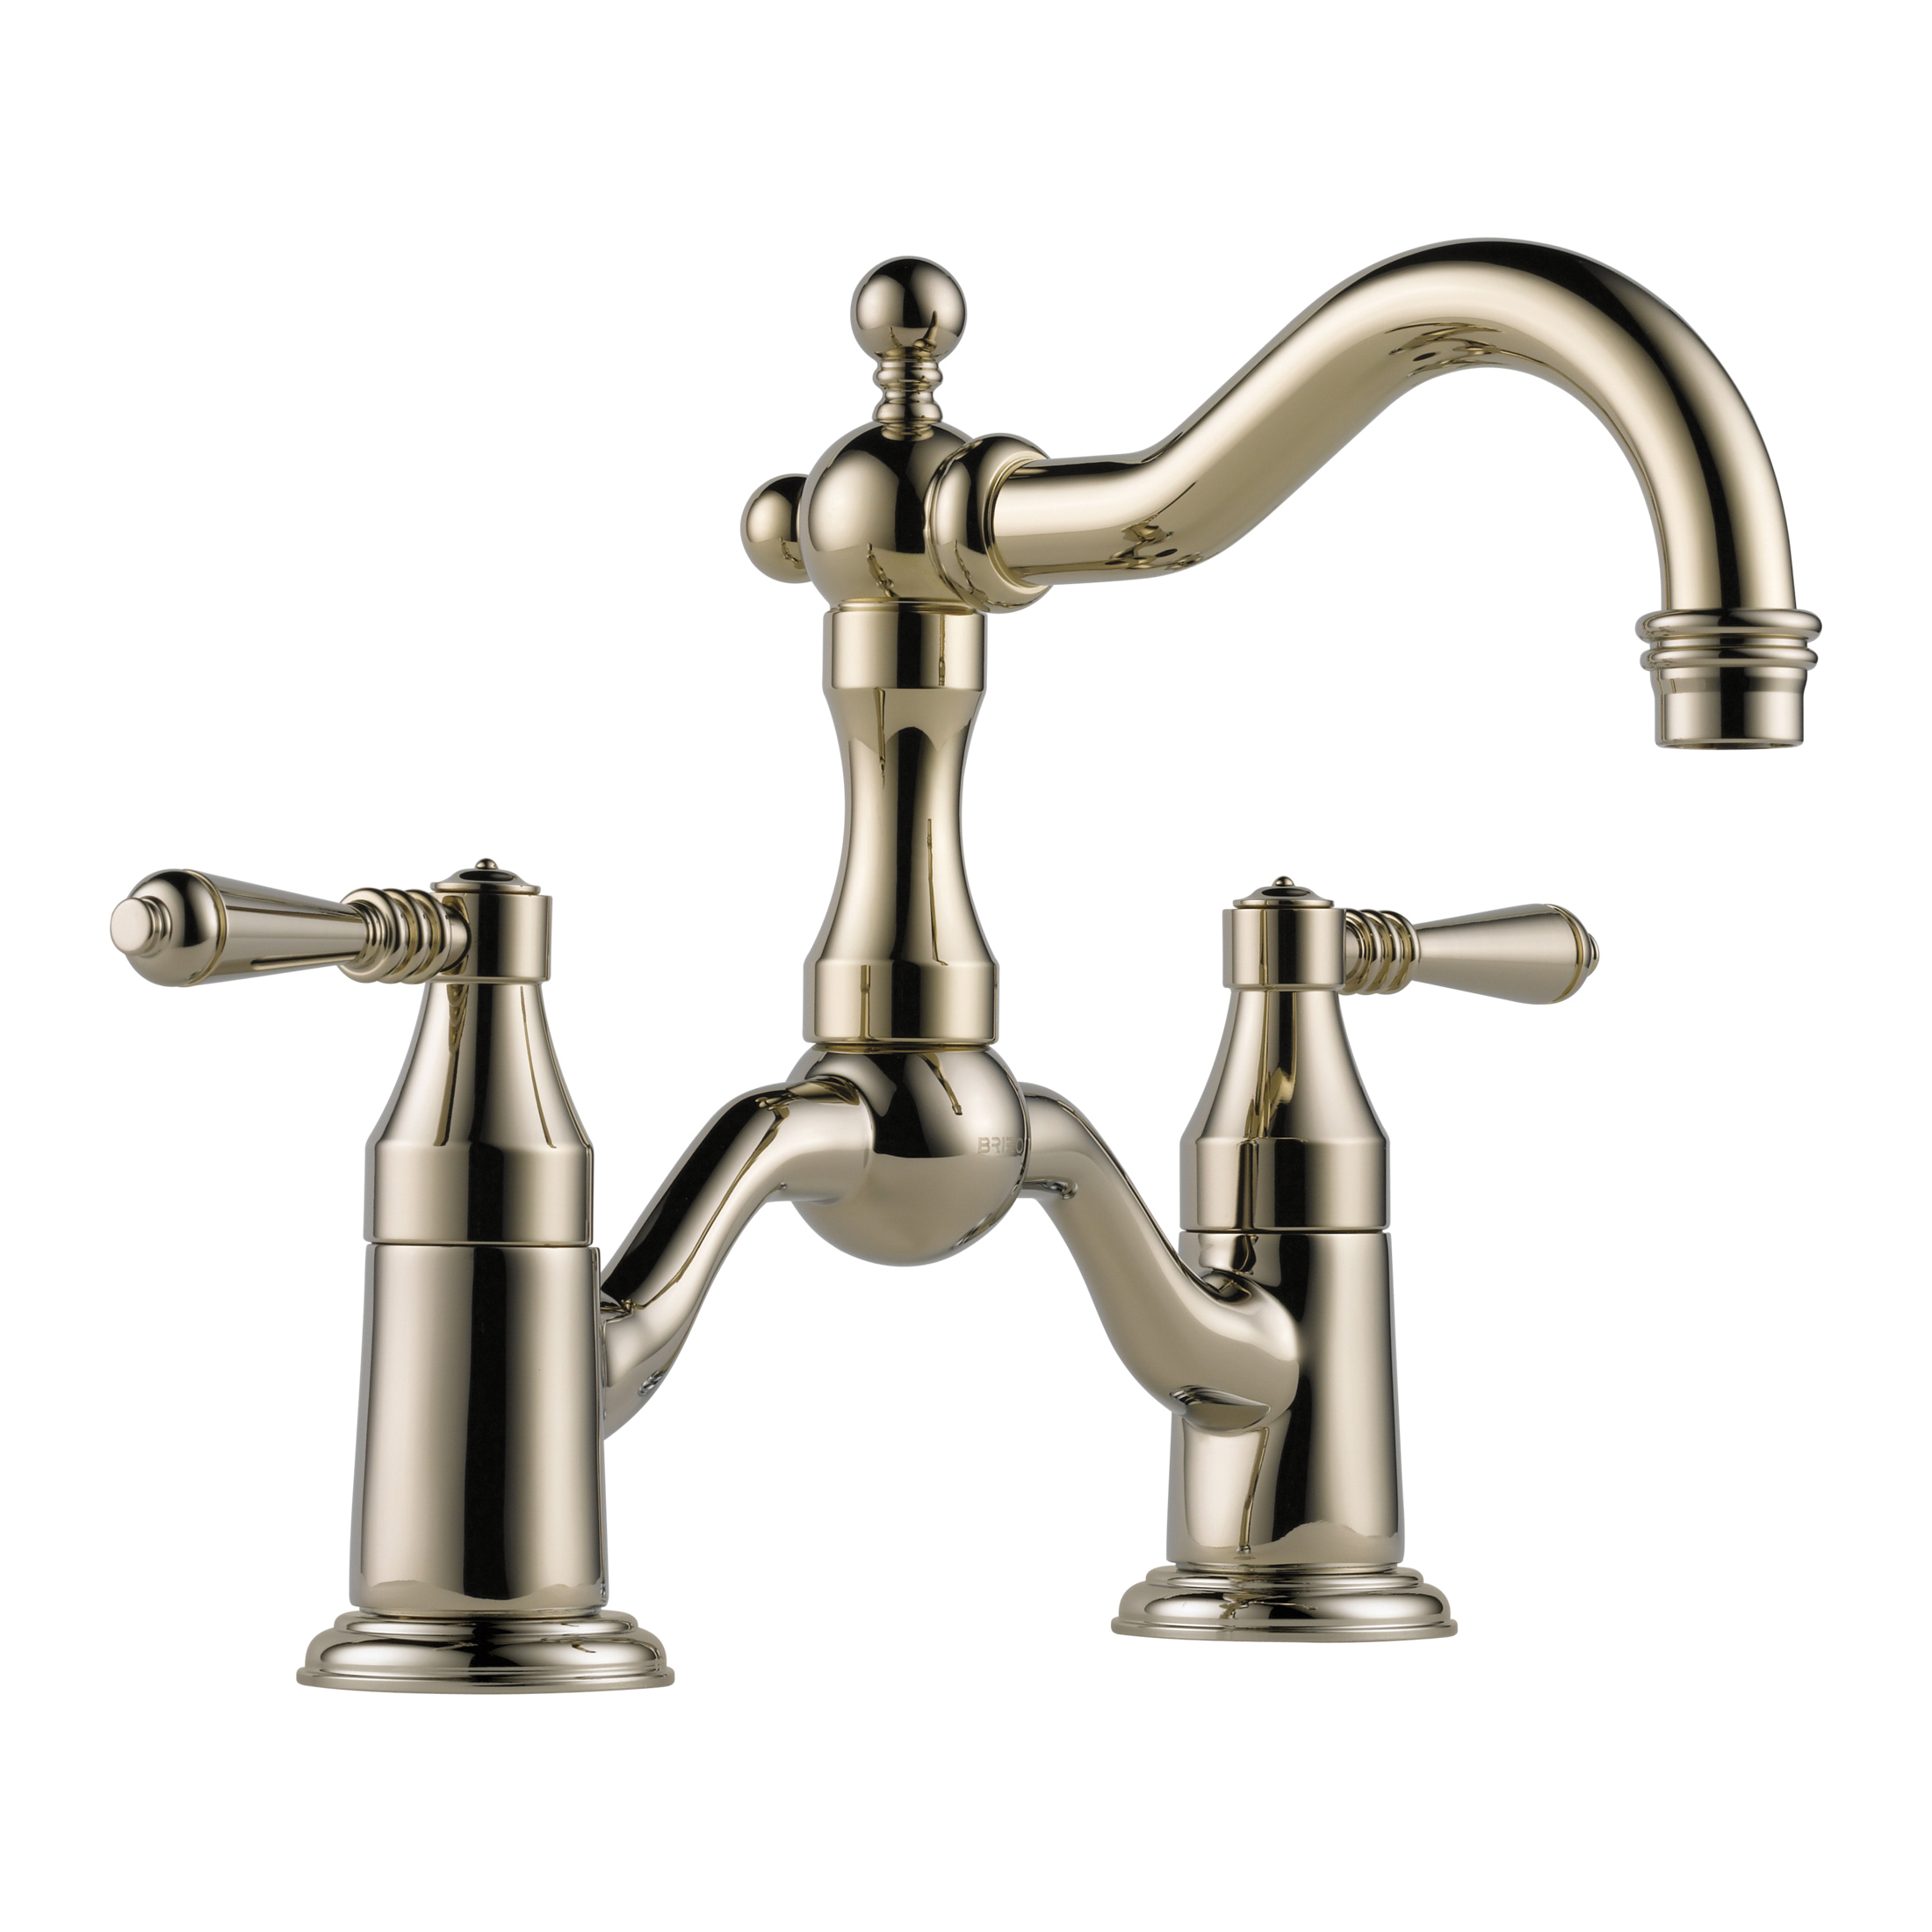 Brizo® 65536LF-PN Tresa® Widespread Bridge Lavatory Faucet, 1.5 gpm, 5-1/2 in H Spout, 8 in Center, 2 Handles, Pop-Up Drain, Polished Nickel, Domestic, Commercial